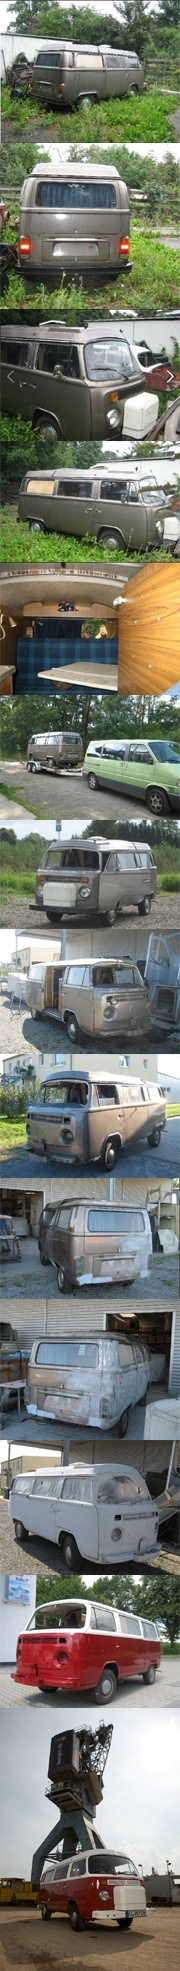 my vw bus t2 1973 and how it gets more and more beautiful